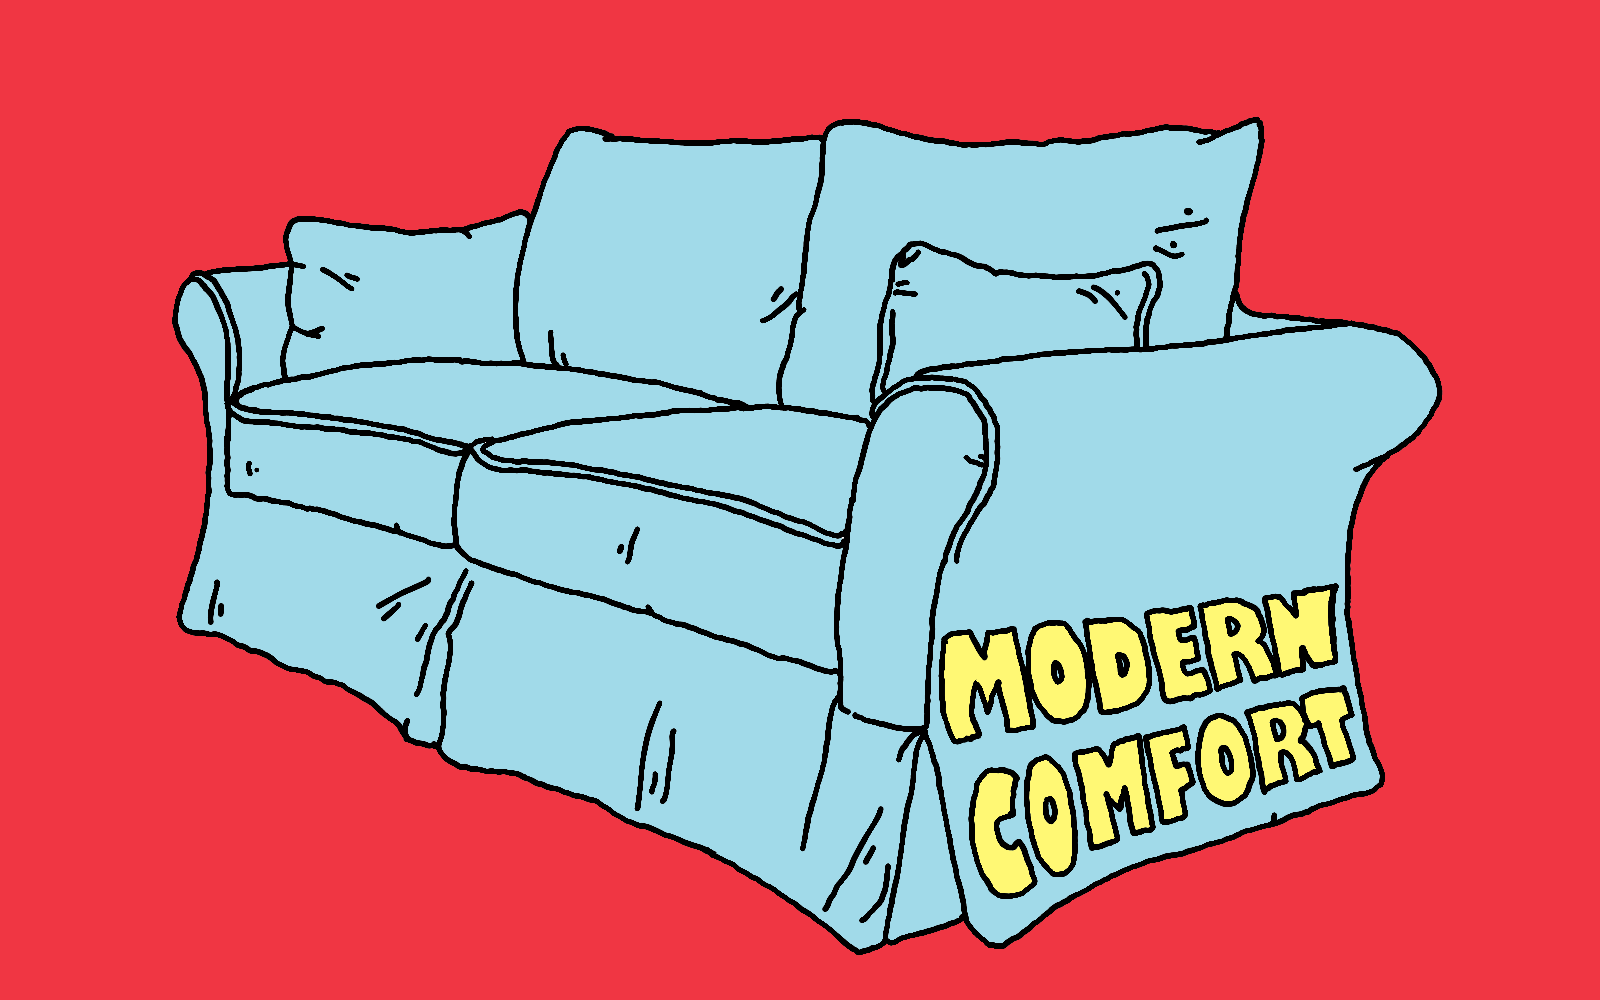 An illustration of a couch.